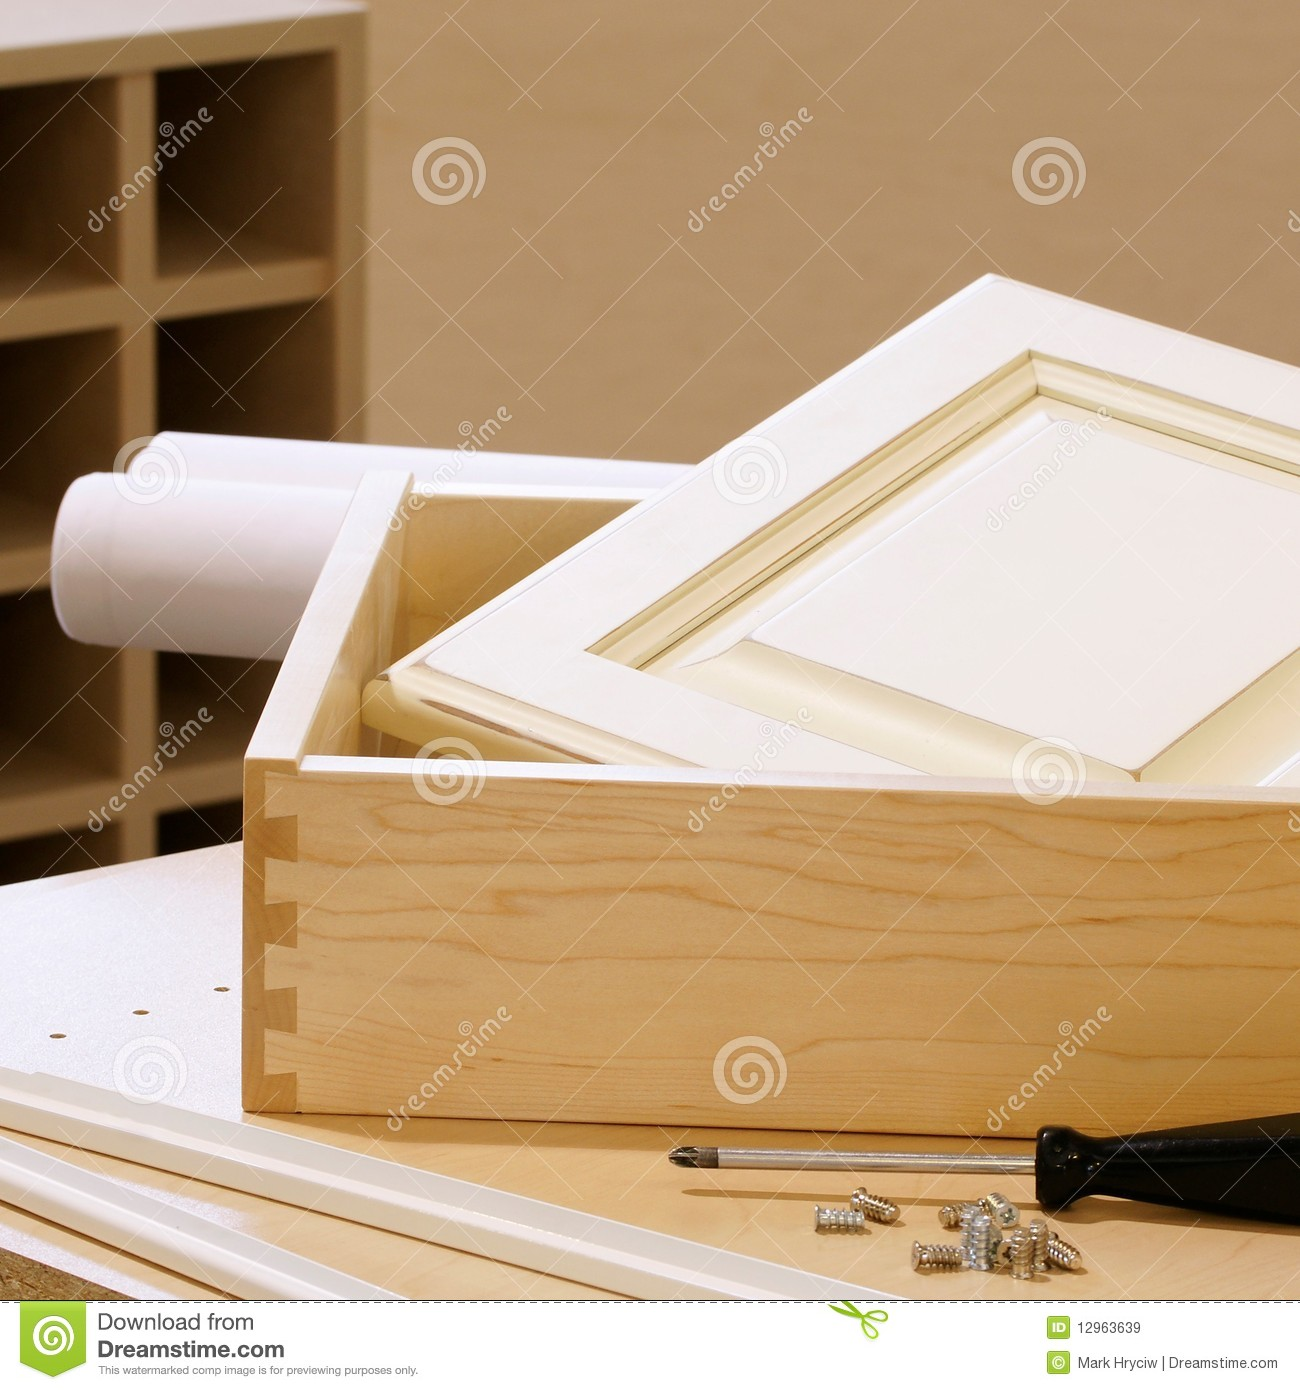 Wonderful image of Woodworking Cabinet Construction Royalty Free Stock Images Image  with #2F1C08 color and 1300x1390 pixels